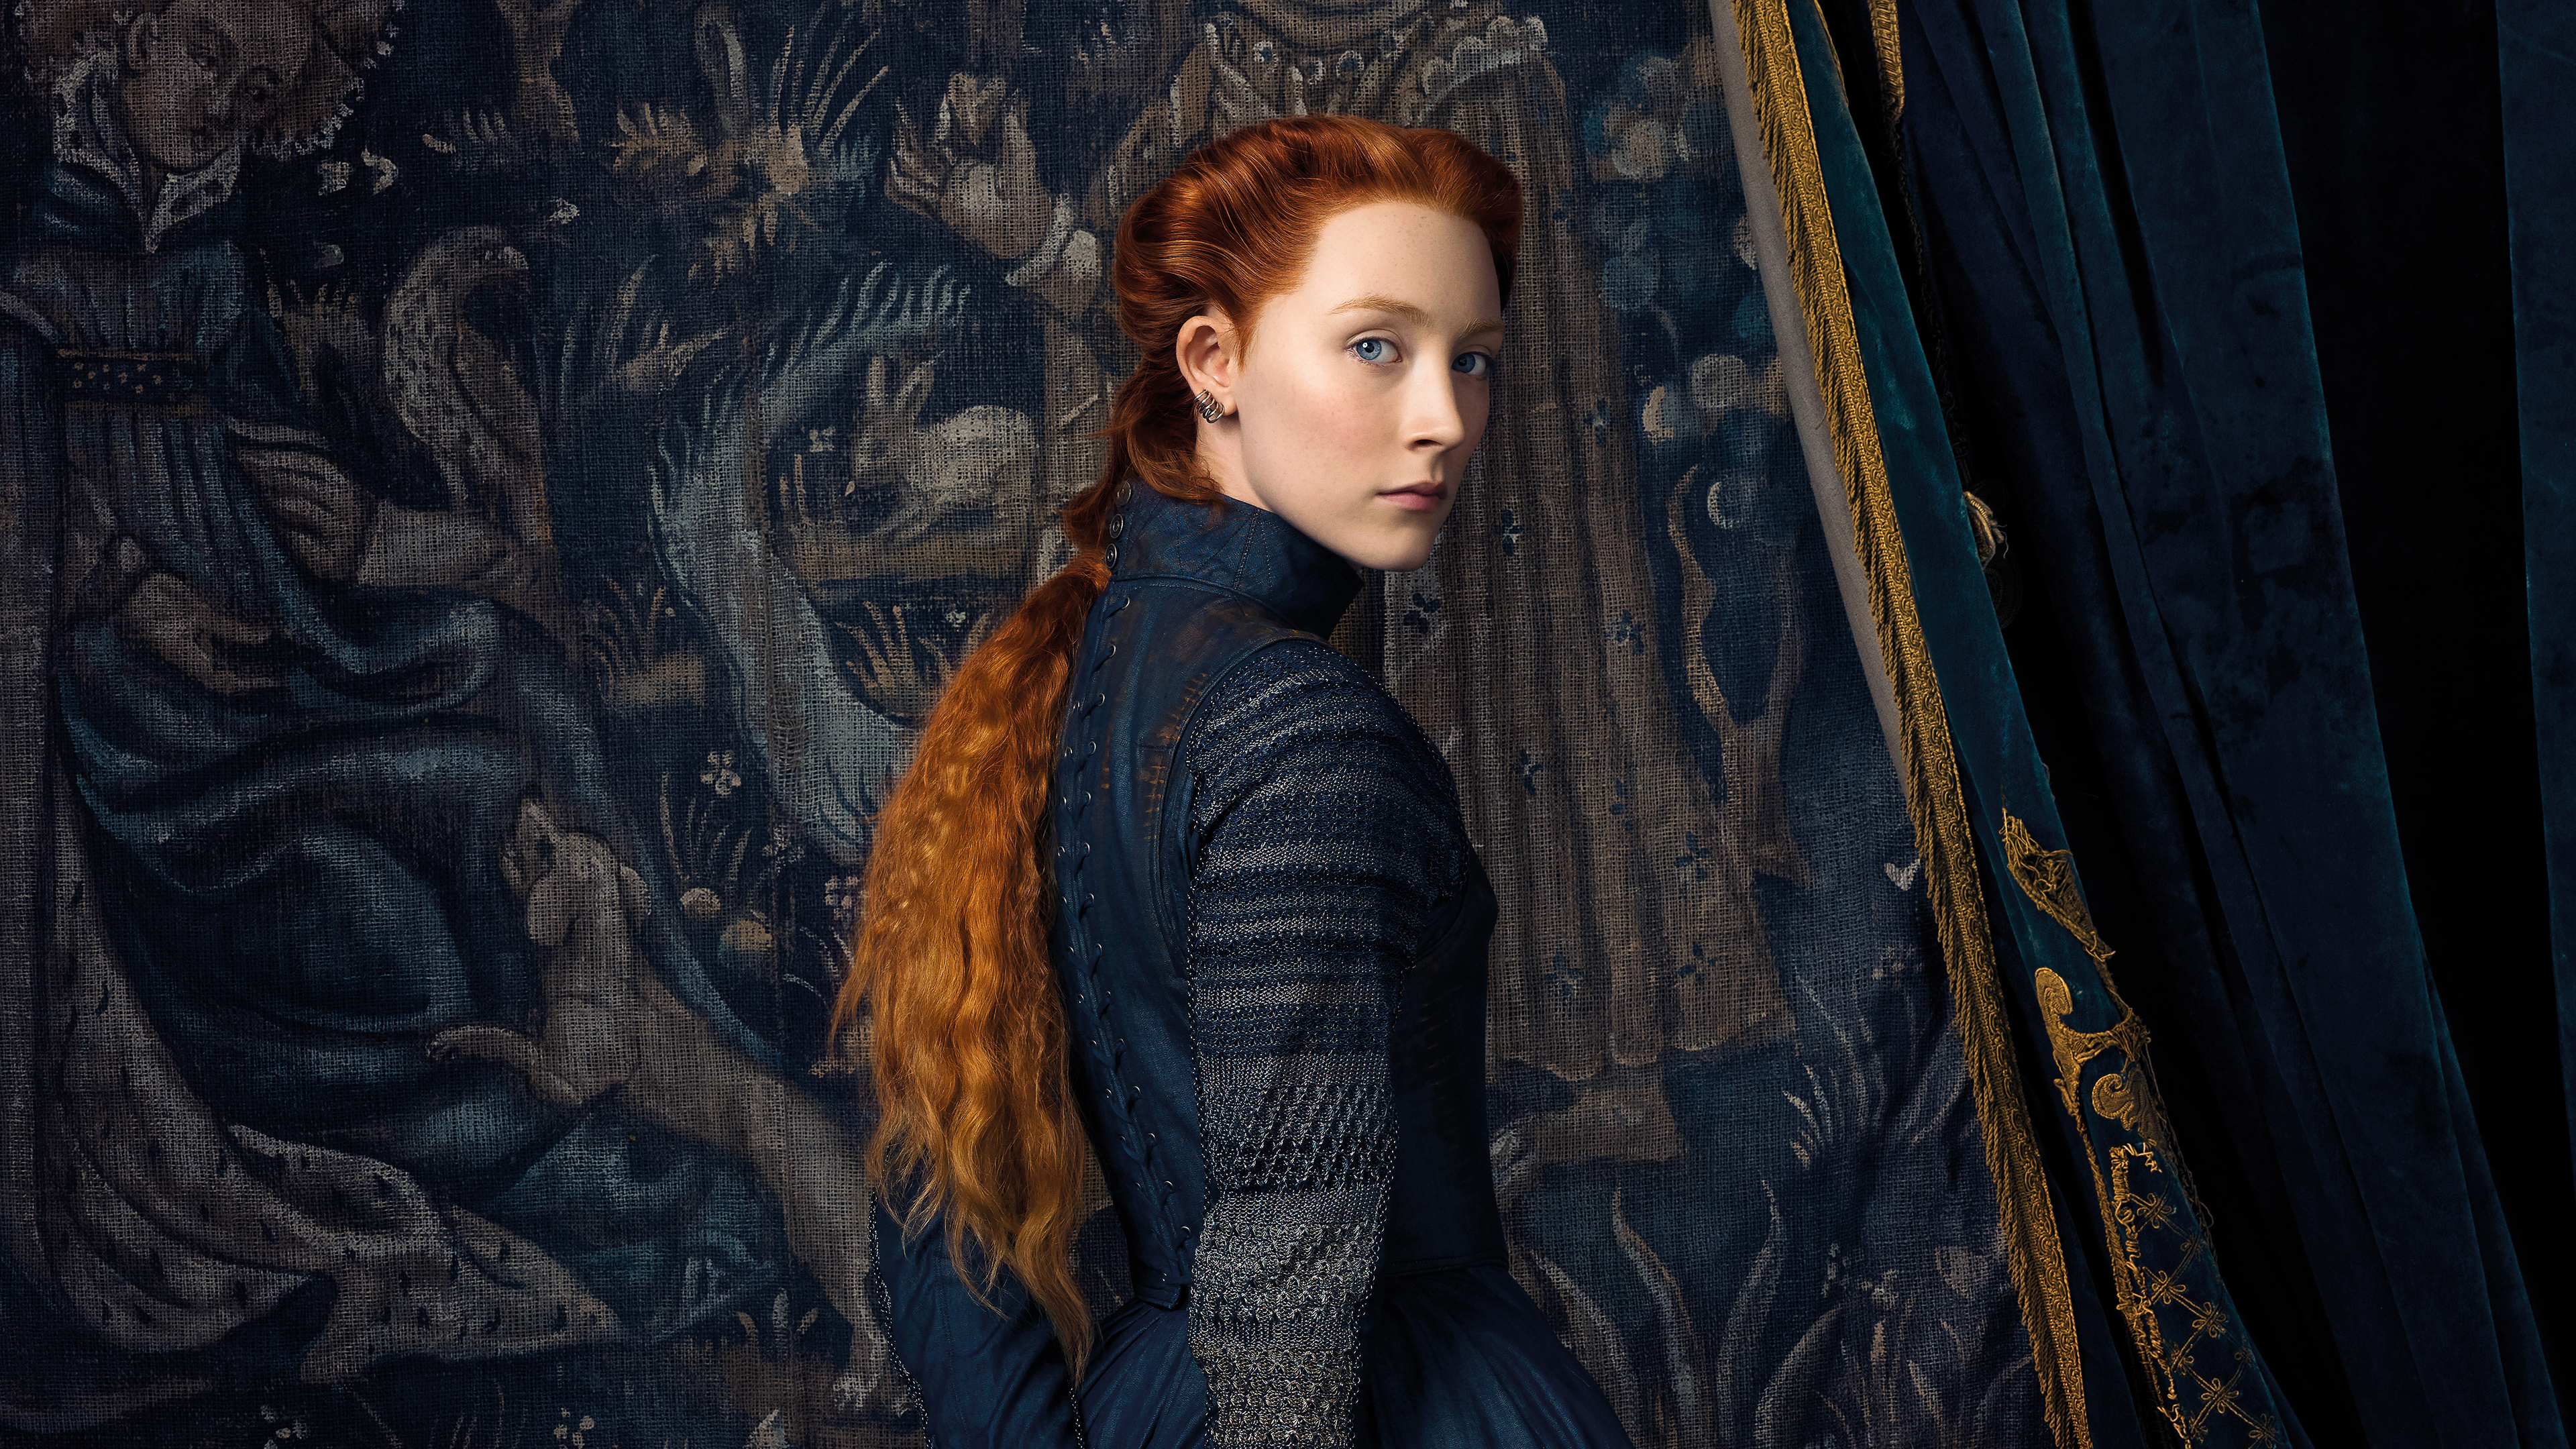 Wallpaper 4k Saoirse Ronan As Mary In Mary Queen Of Scots Movie 5k